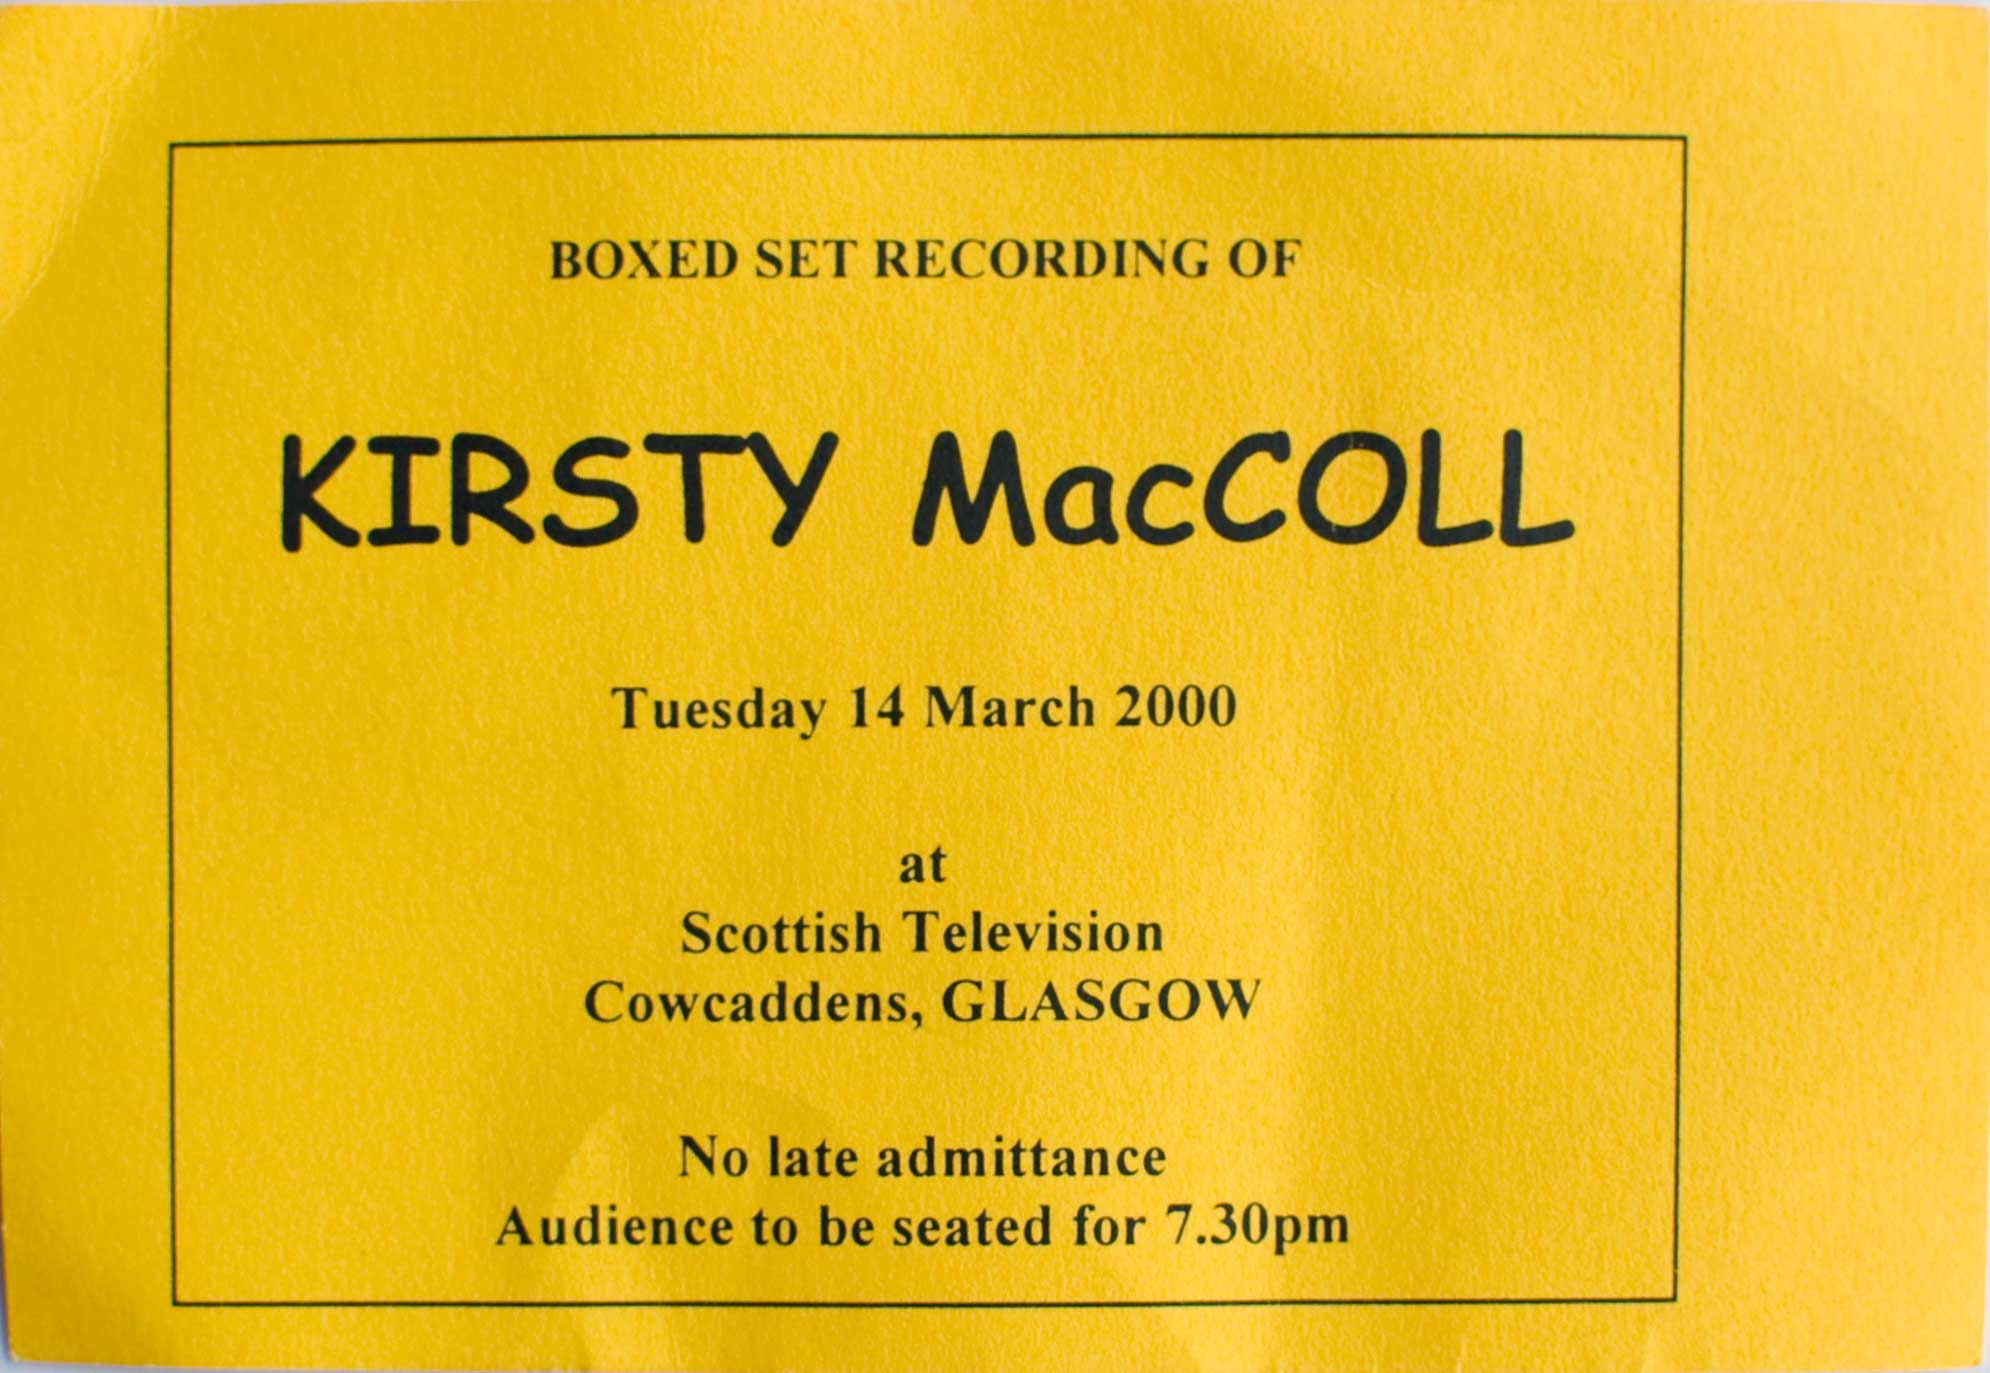 Boxed Set ticket, 14 March 2000